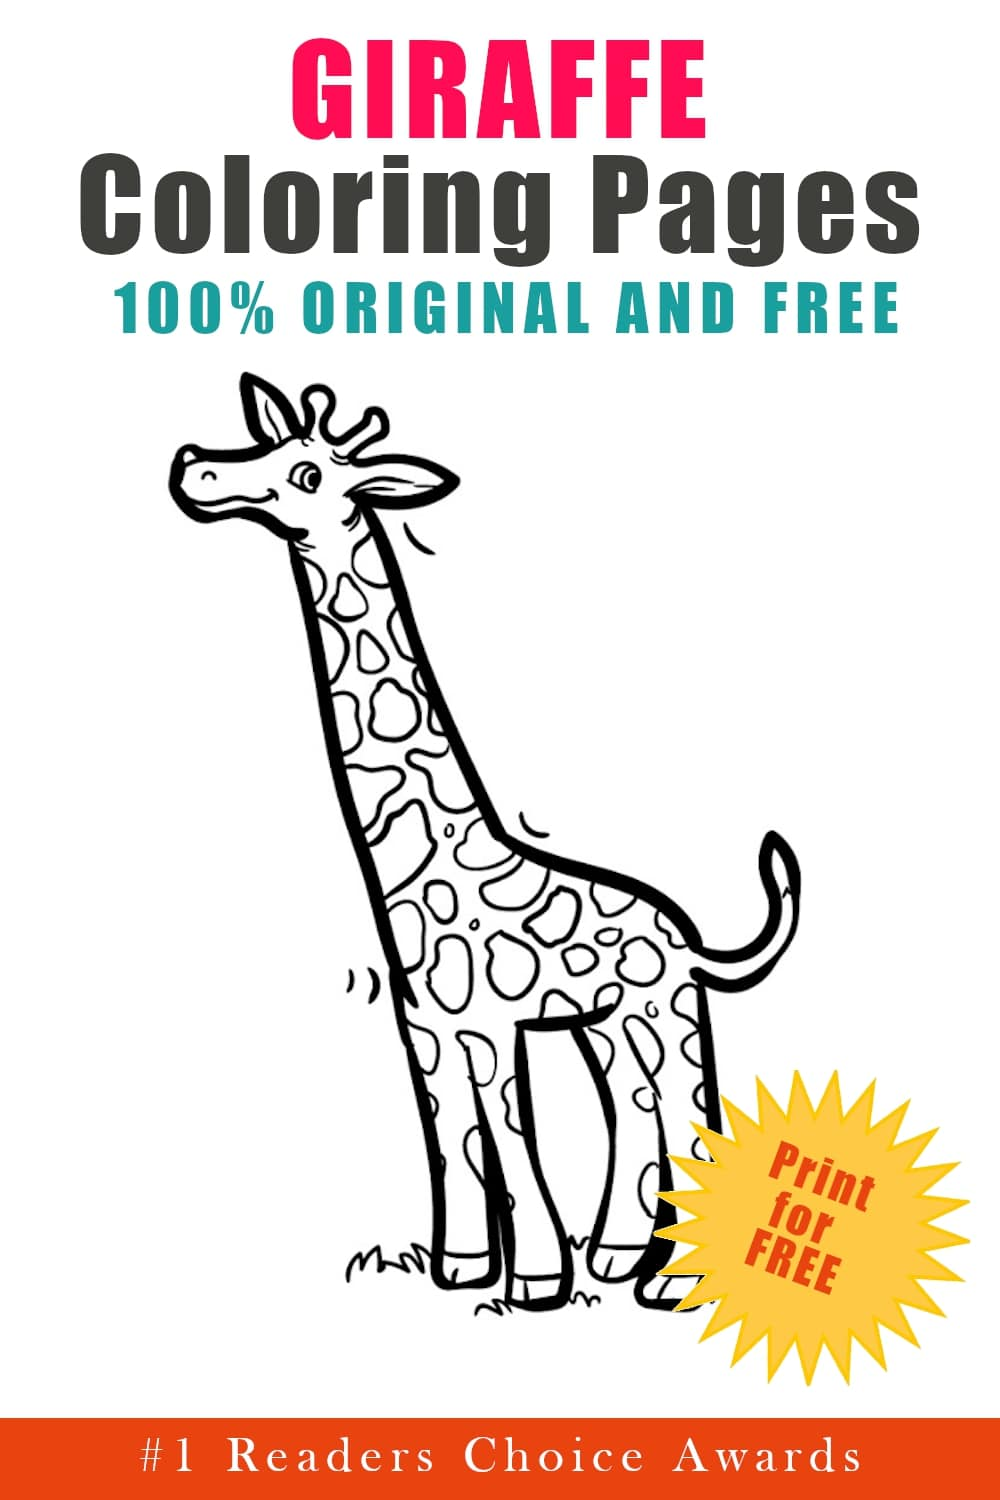 original and free giraffe coloring pages